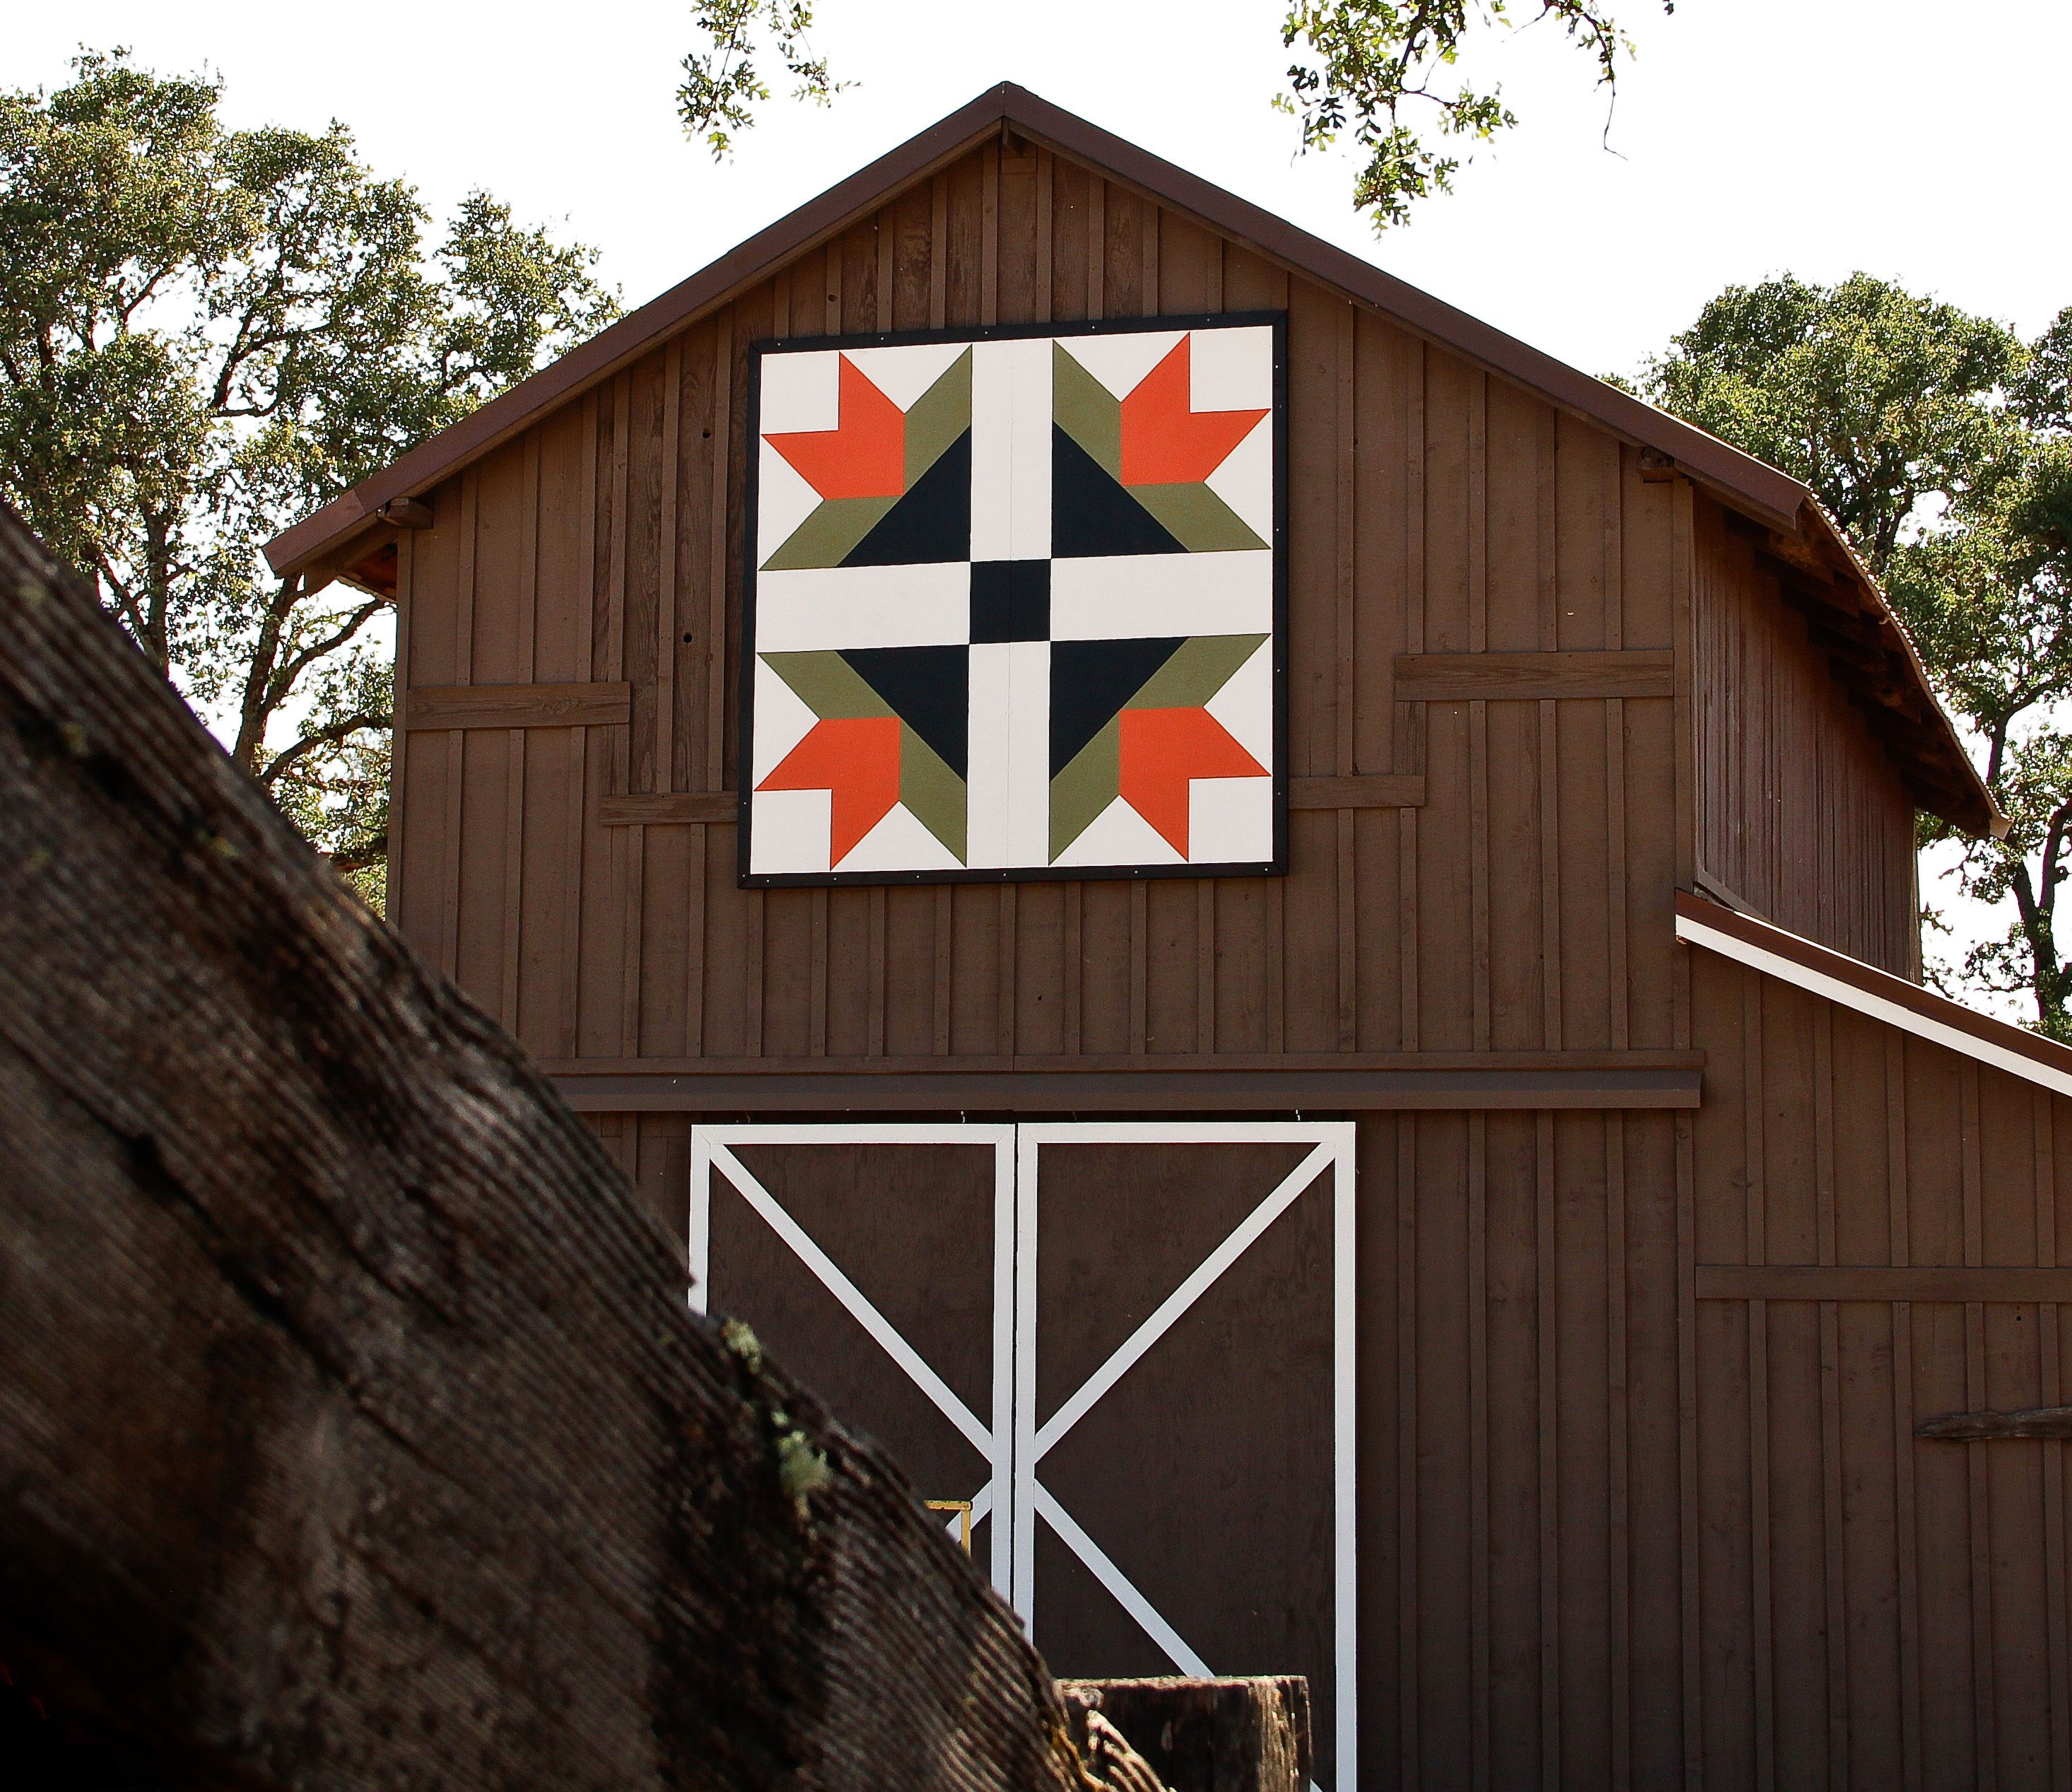 Quilt Patterns On Wisconsin Barns : barn quilt patterns and their meanings - Google Search Rustic Centerpieces Pinterest Lakes ...